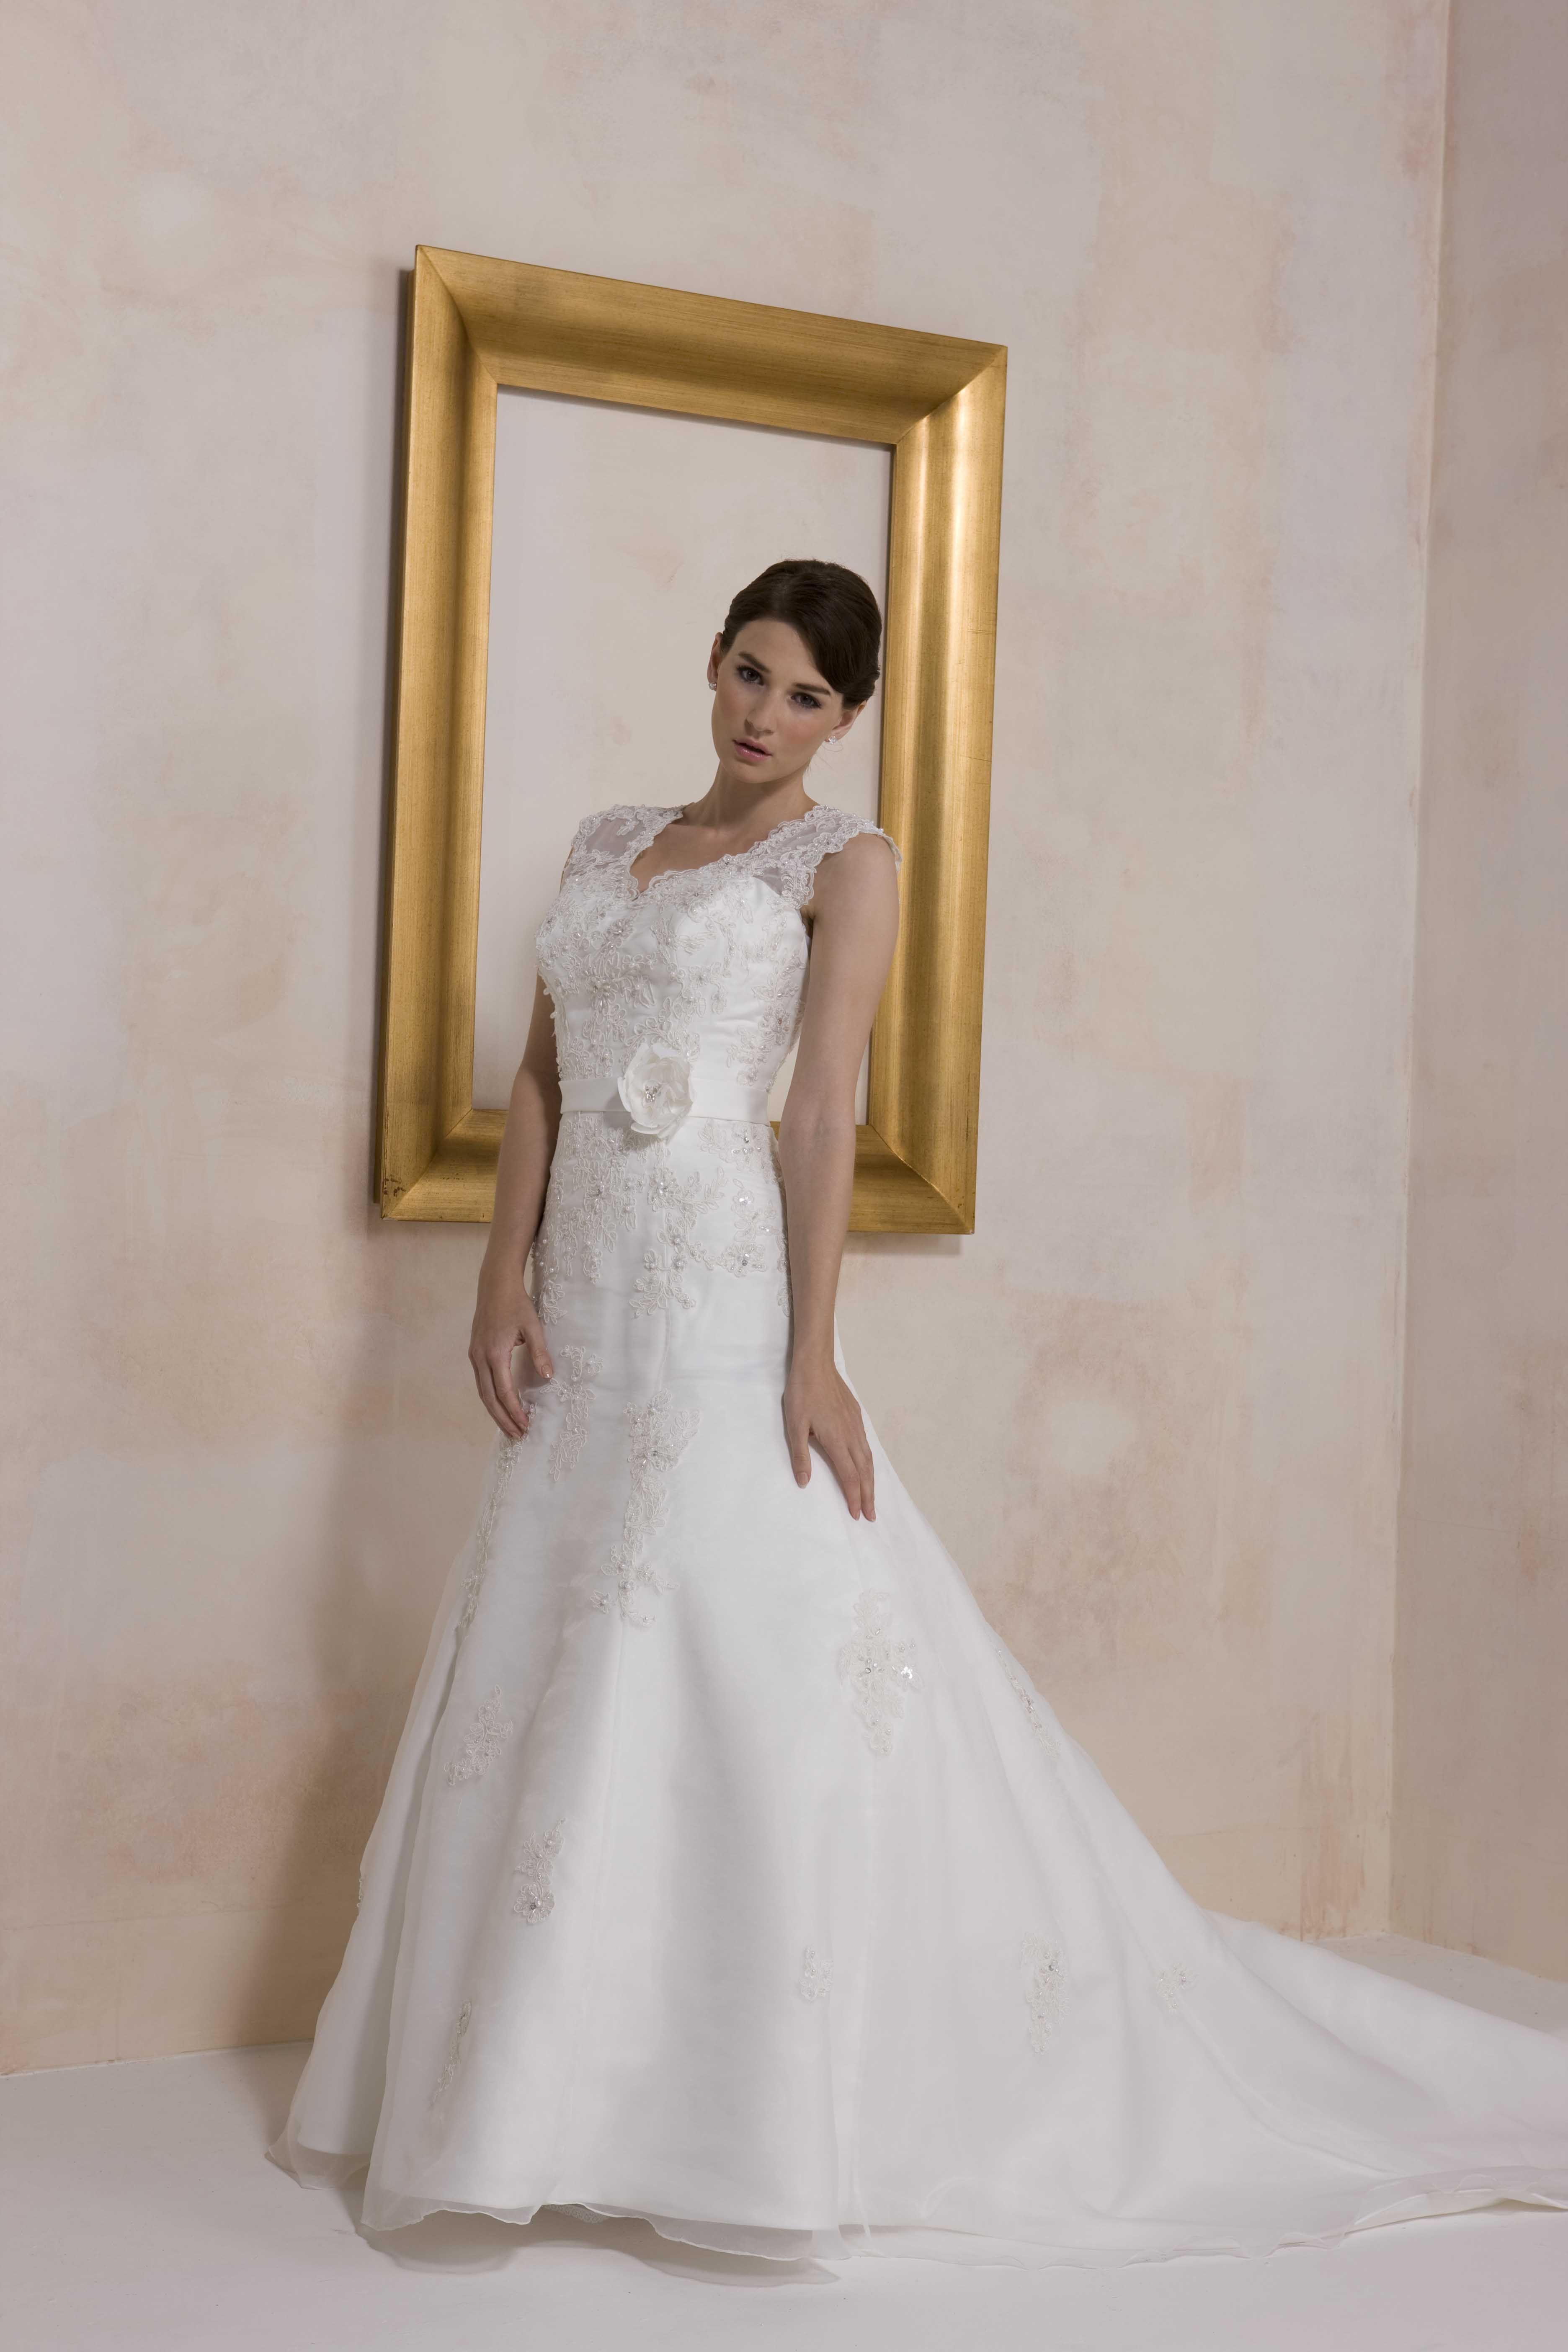 Royale by Romantica Bridal as featured on the Romantica of Devon ...